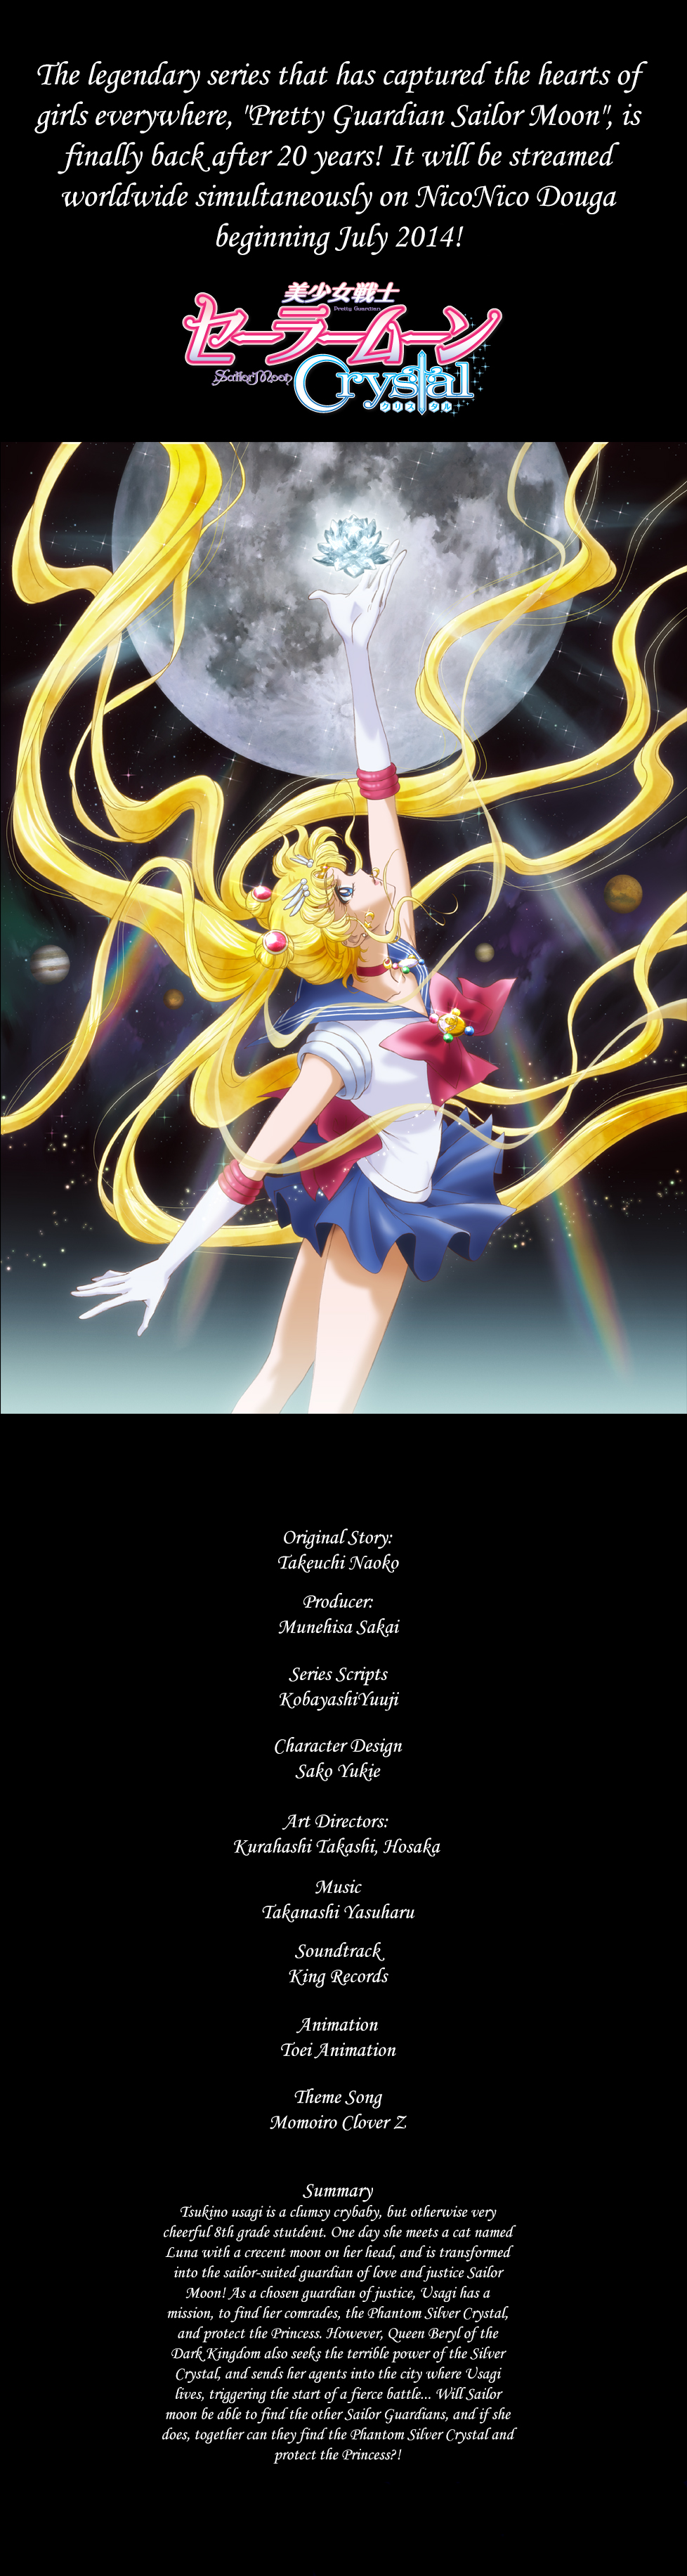 [NEWS] ANIME CHARACTER ART REVEALED!!!!!!!!! (FOR REAL FROM SAILORMOON-OFFICIAL!!!) Smsiteleak_translation